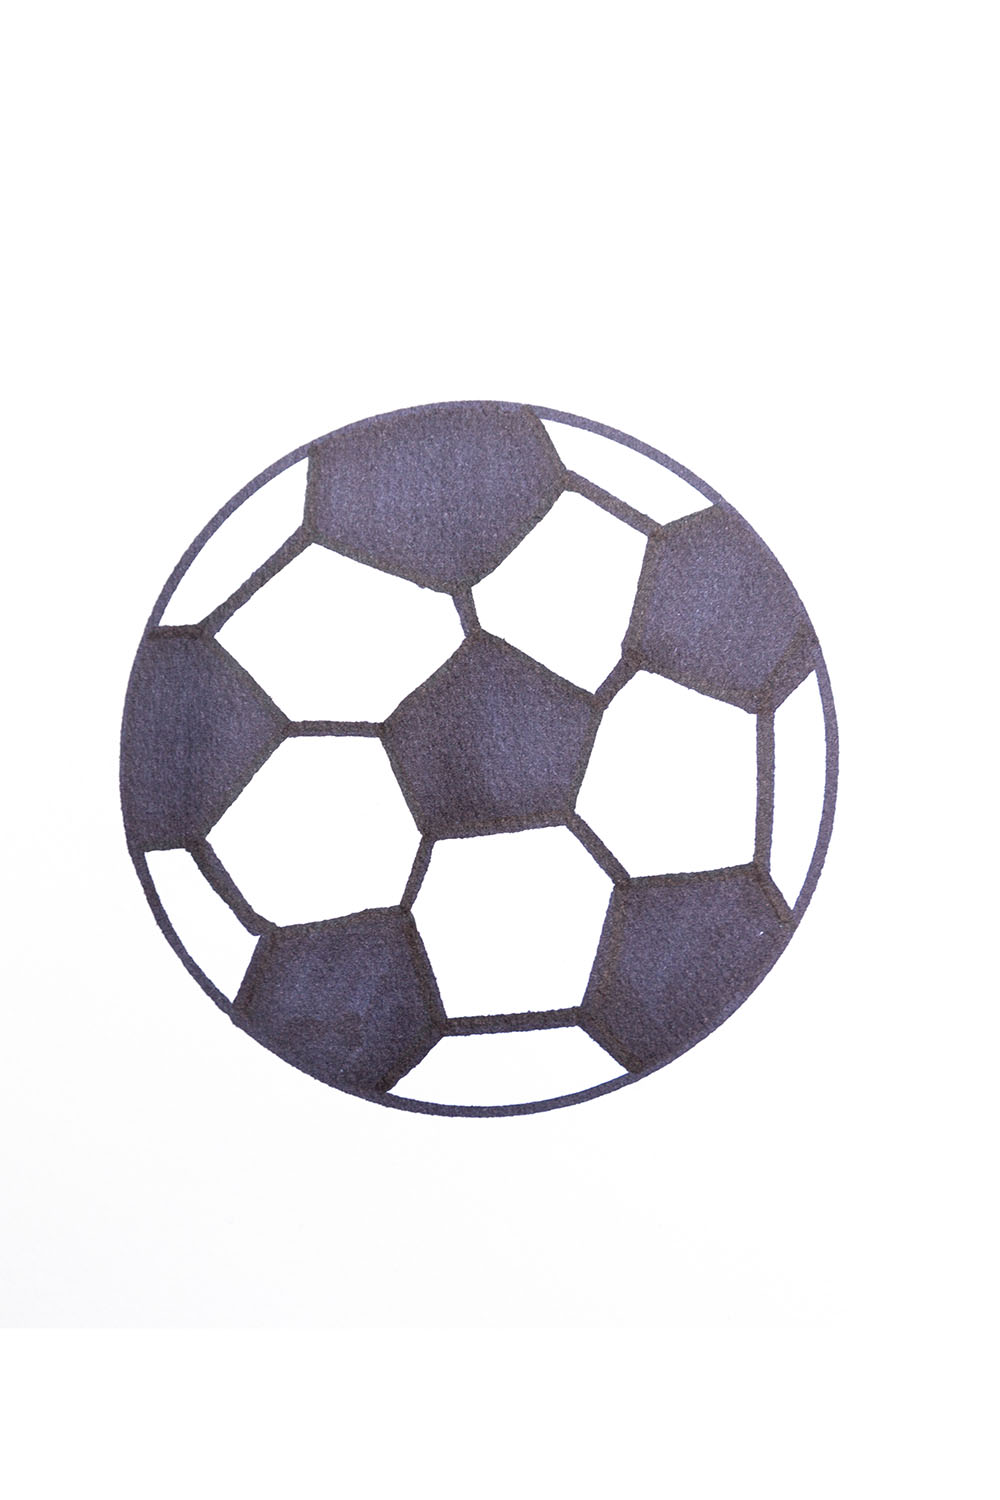 How to draw football